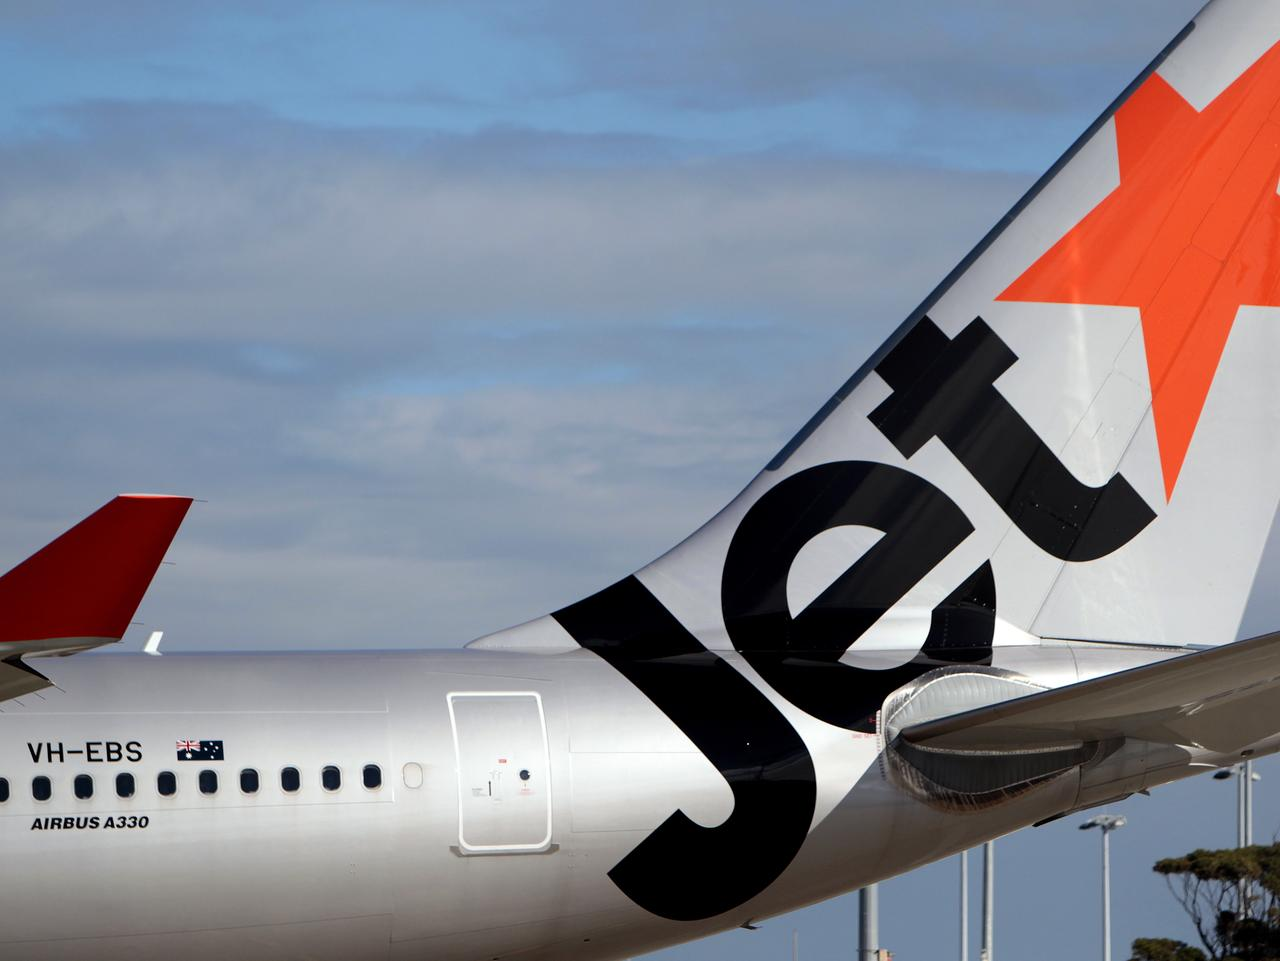 Generic Jetstar aircraft at Sydney airport. Jet star, plane.